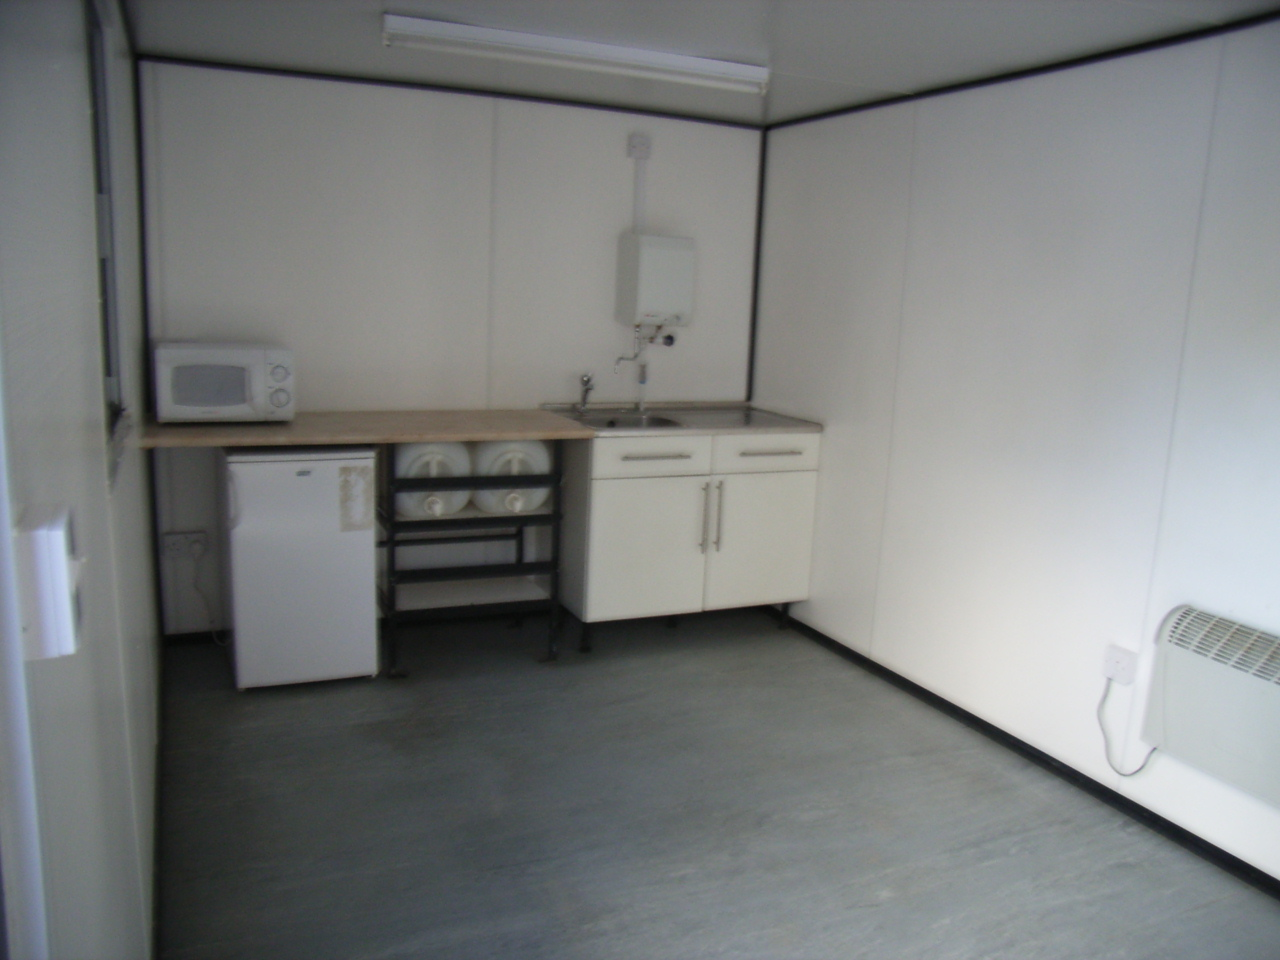 typical 24' welfare unit canteen